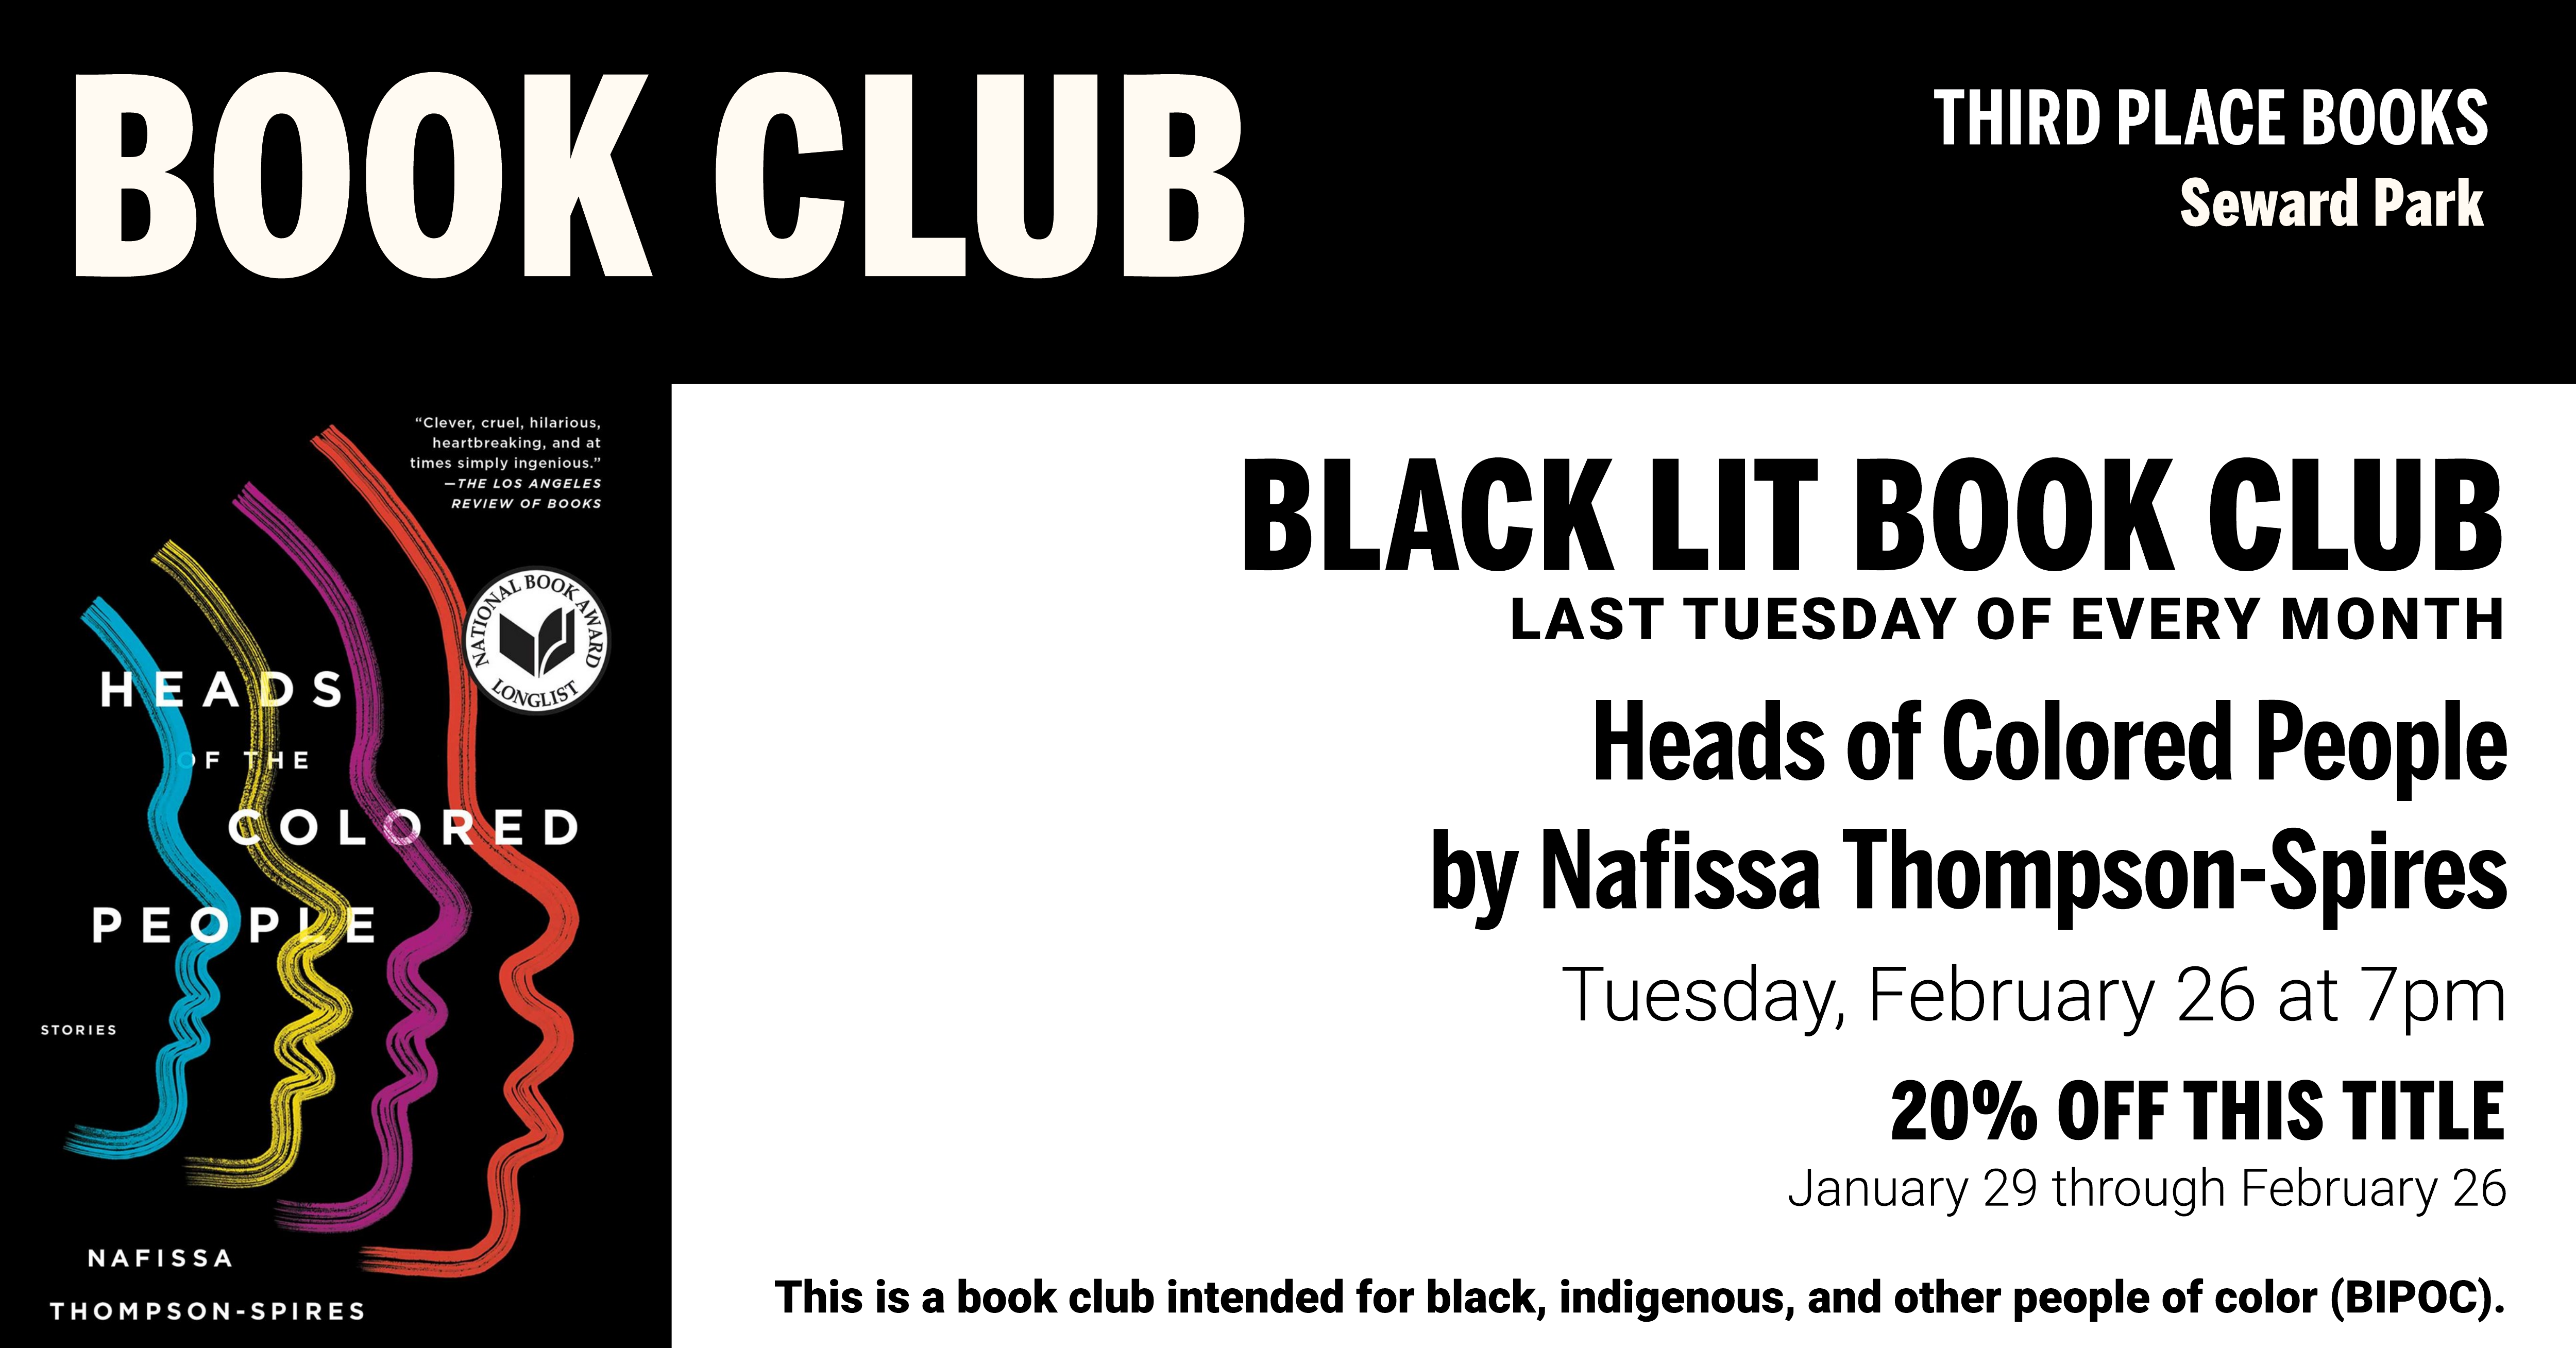 Black Lit Book Club discussing The Heads of Colored People on Tuesday, February 26 at 7pm